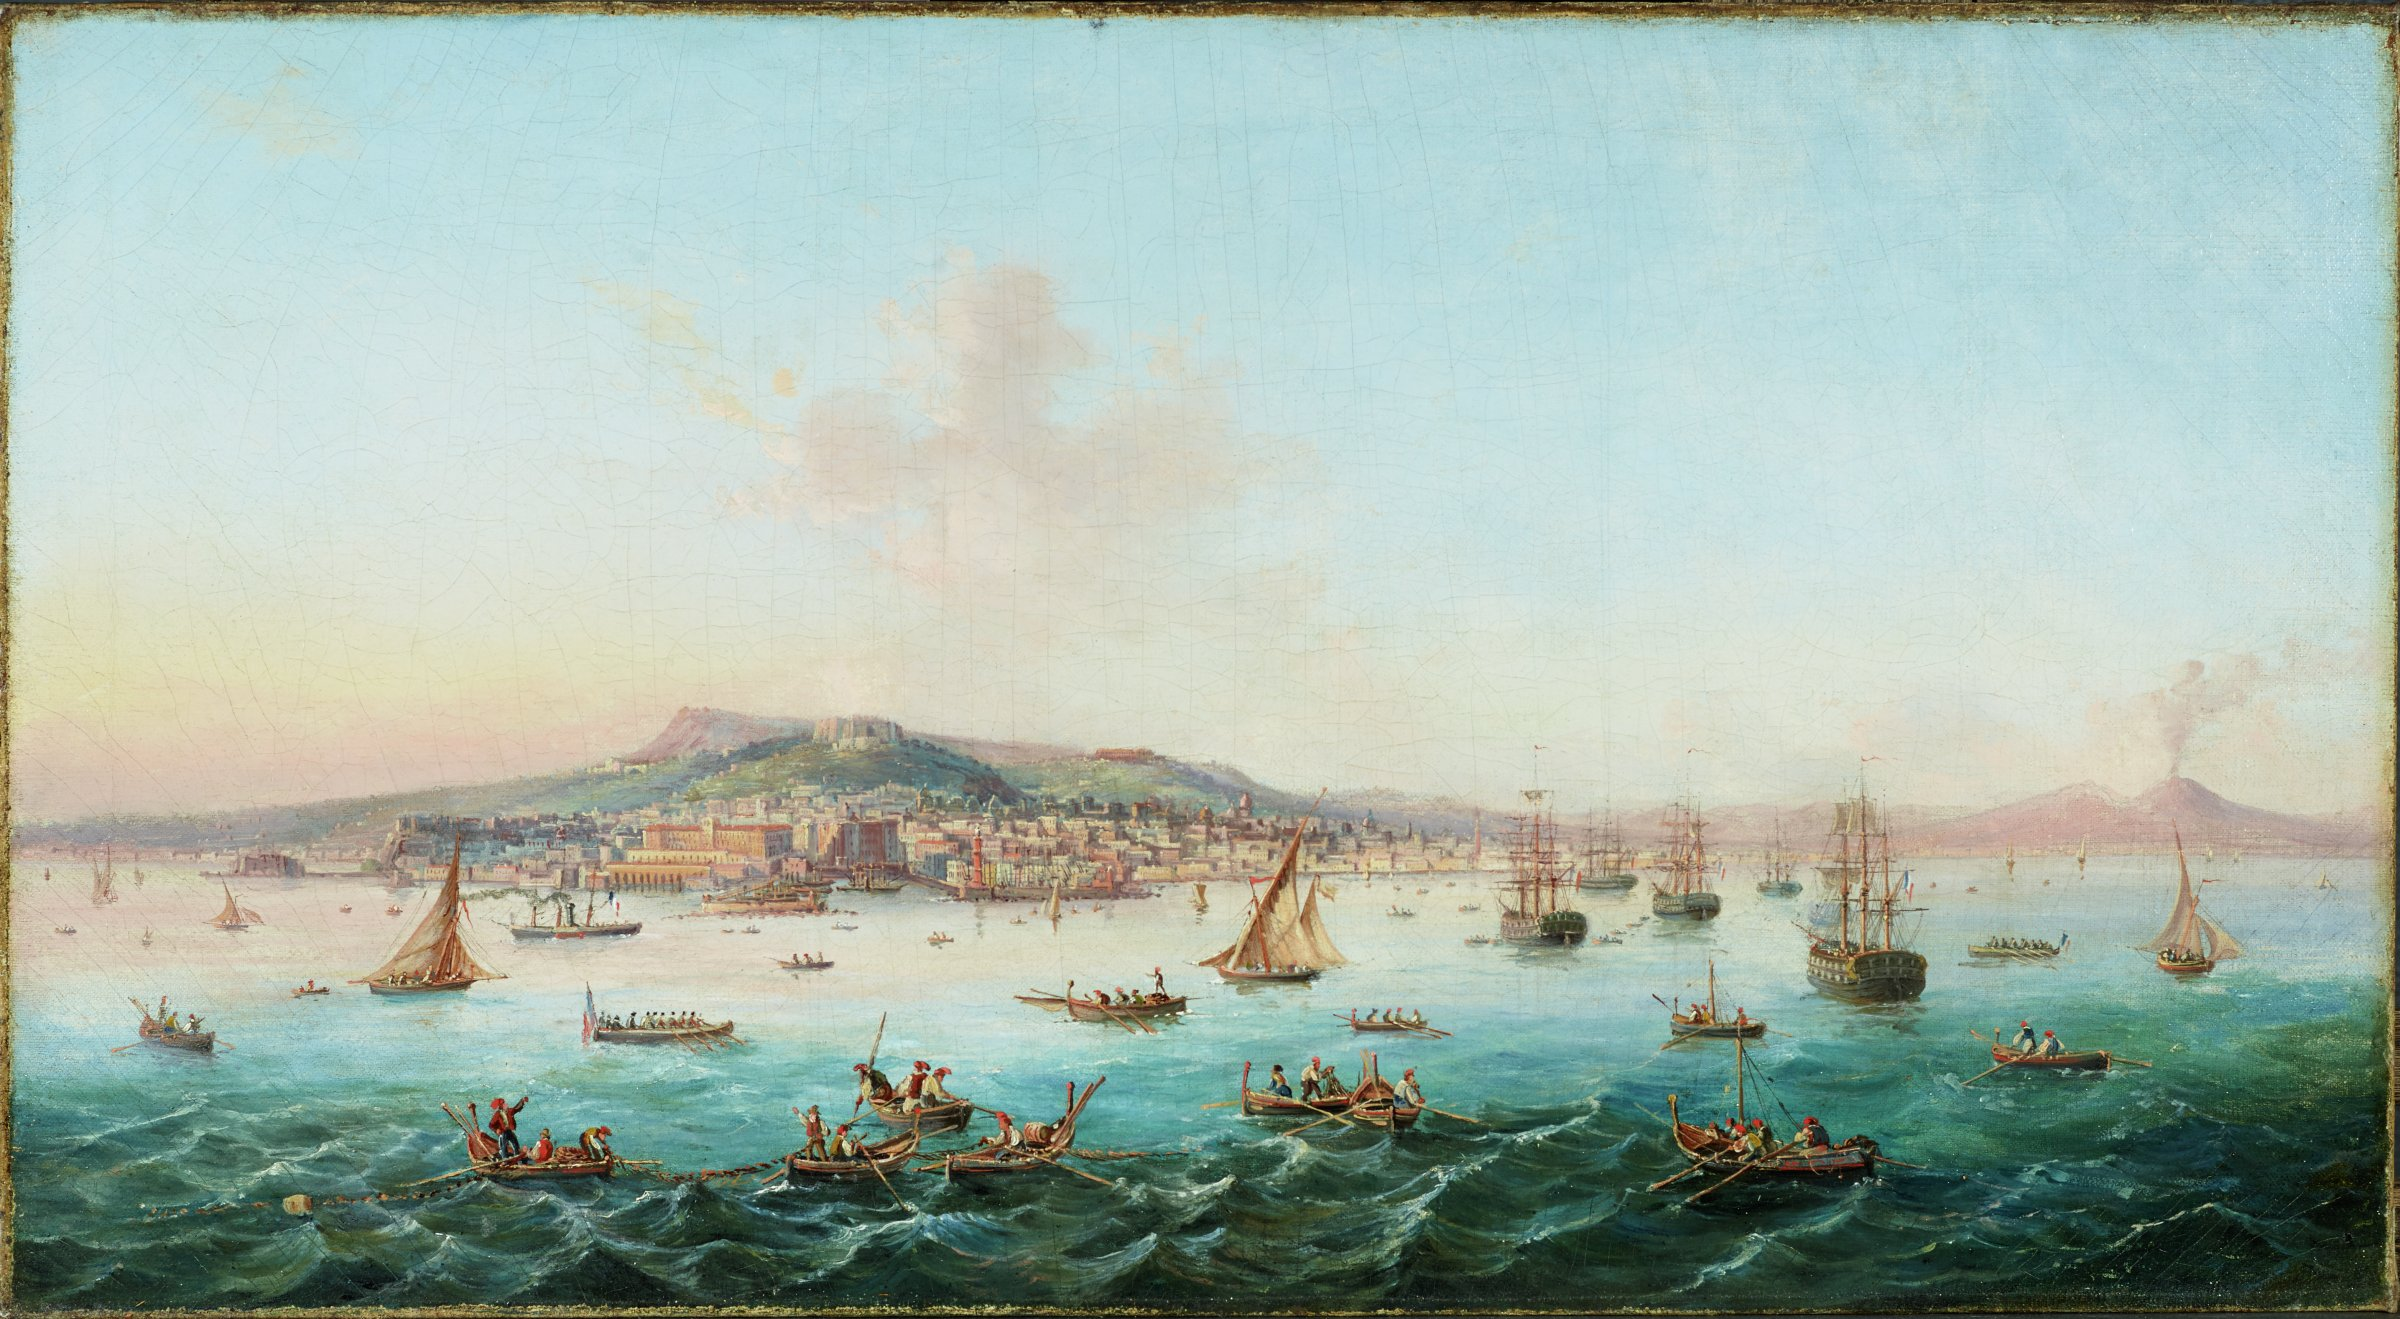 View of the Bay of Naples, Italy, oil on canvas